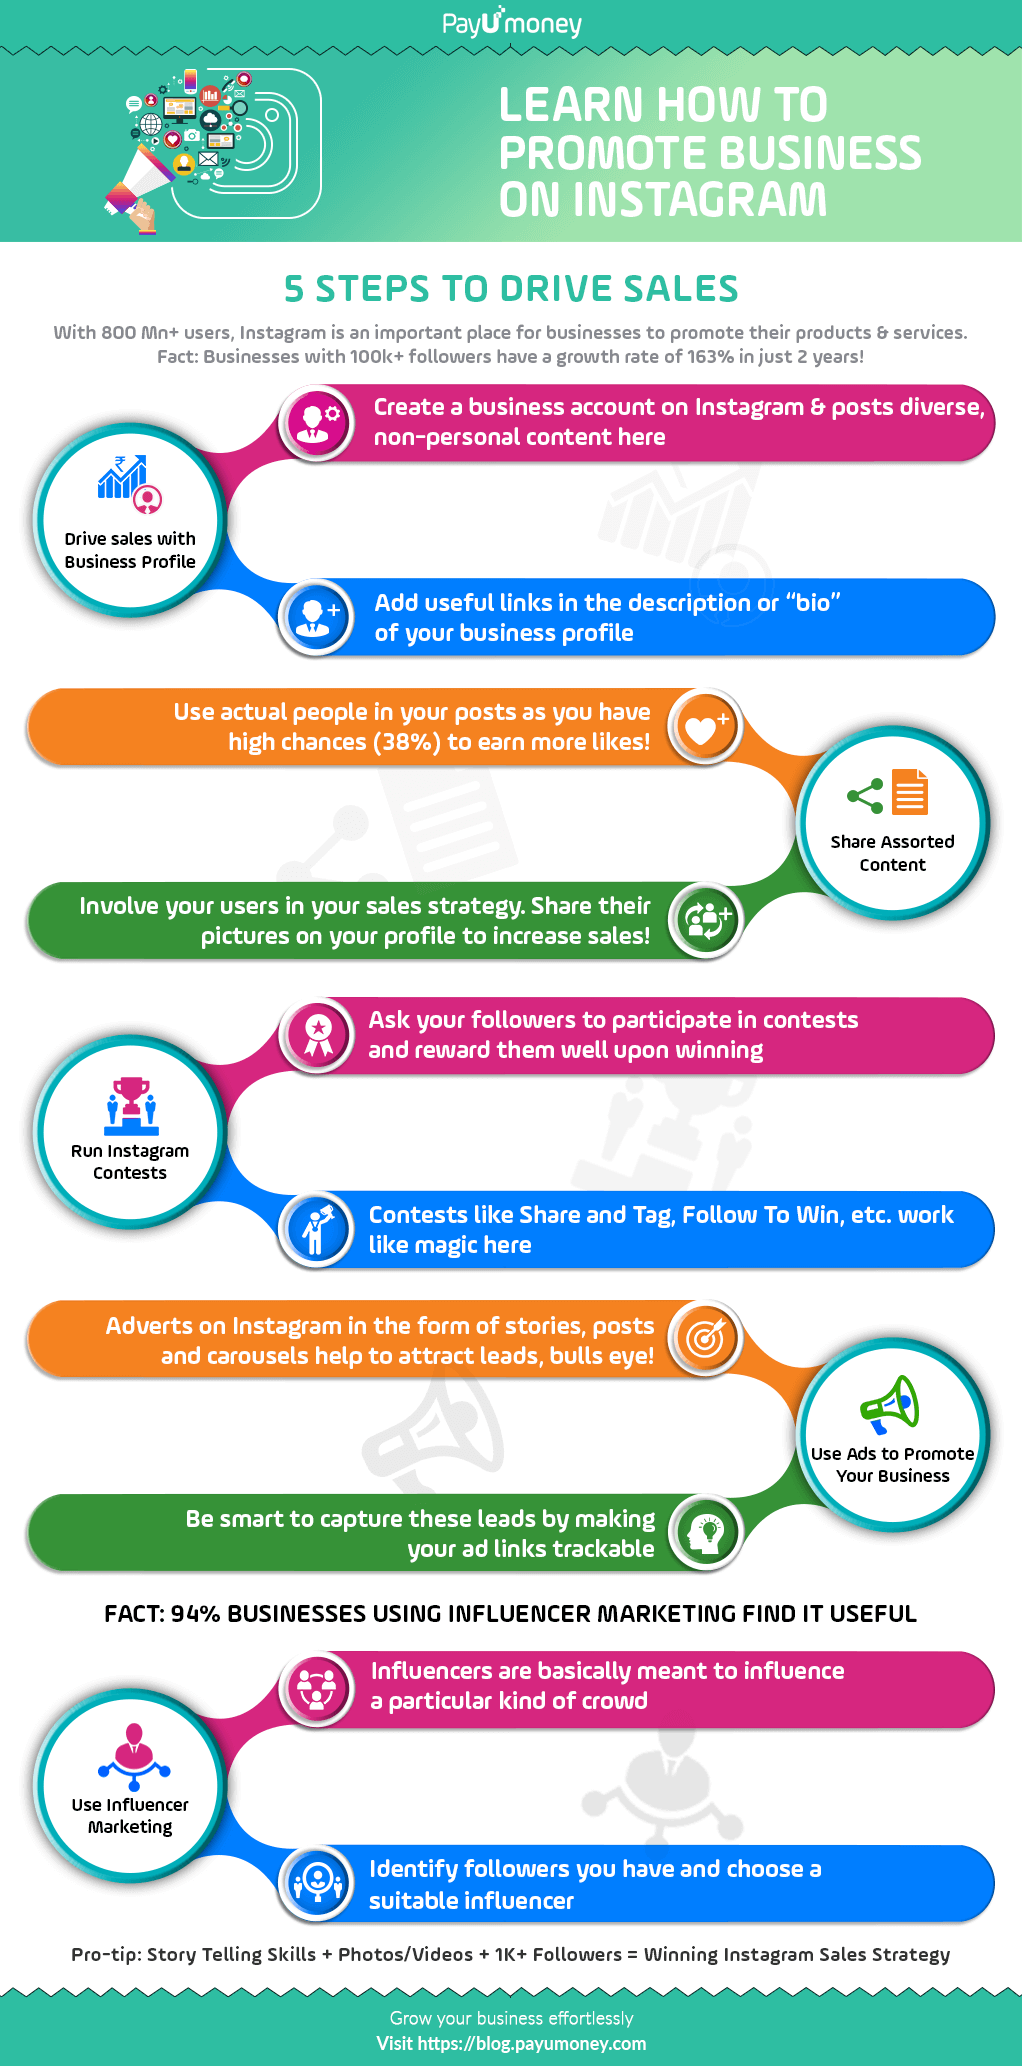 how to promote business son instagram infographic